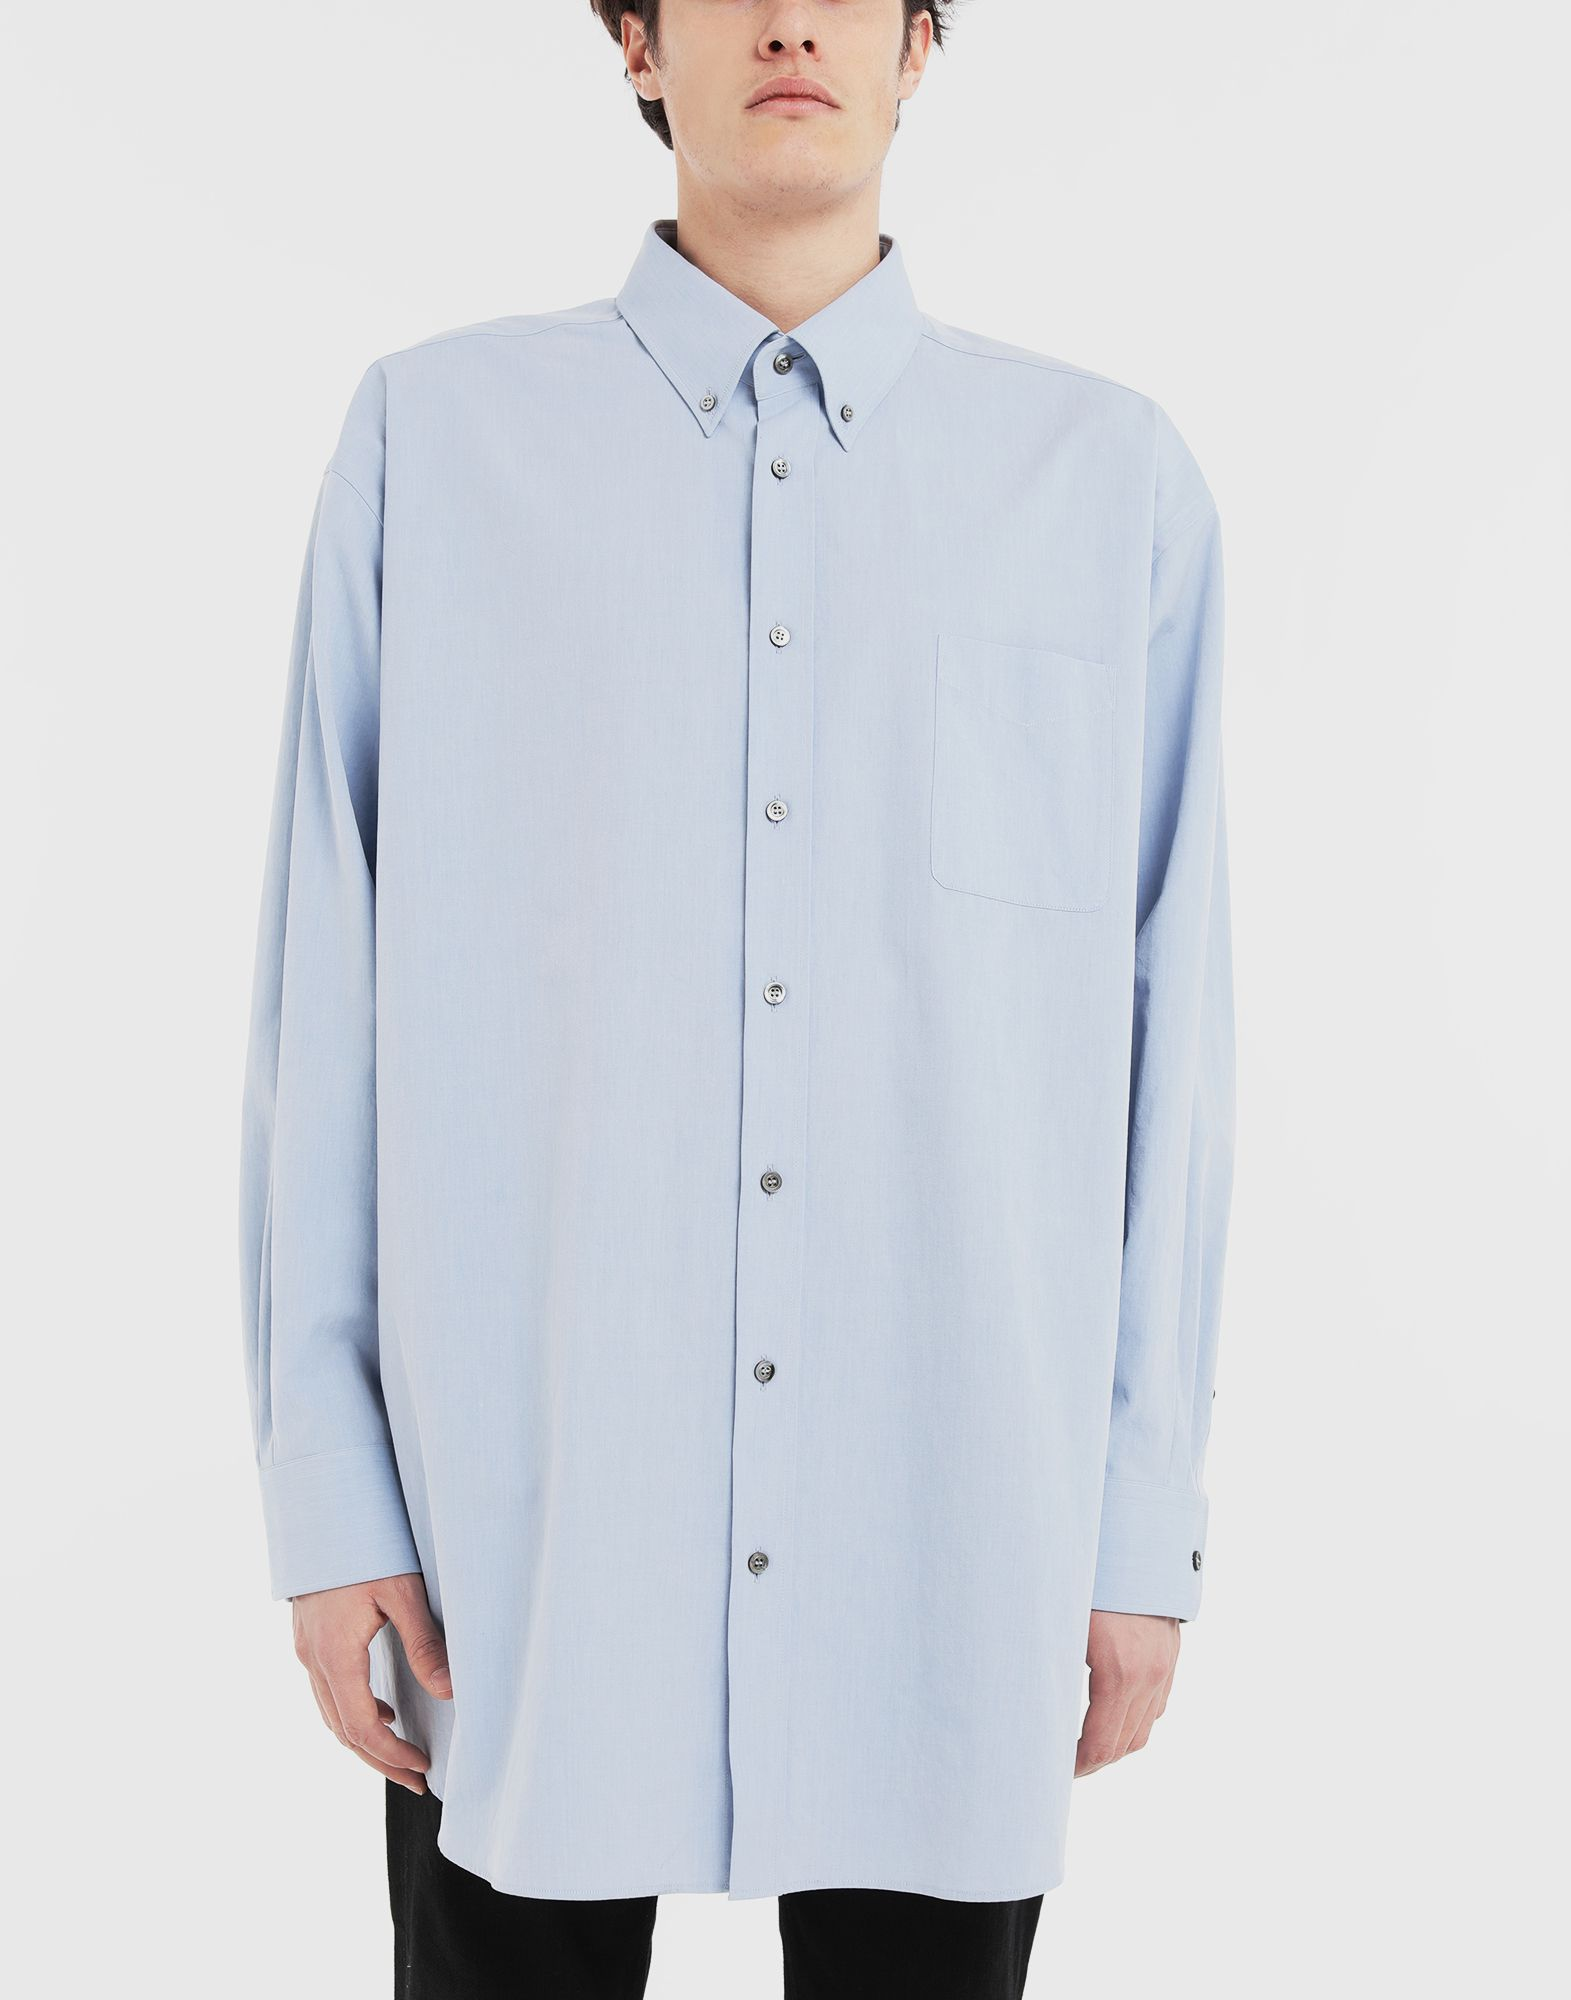 MAISON MARGIELA Oversized shirt Long sleeve shirt Man r